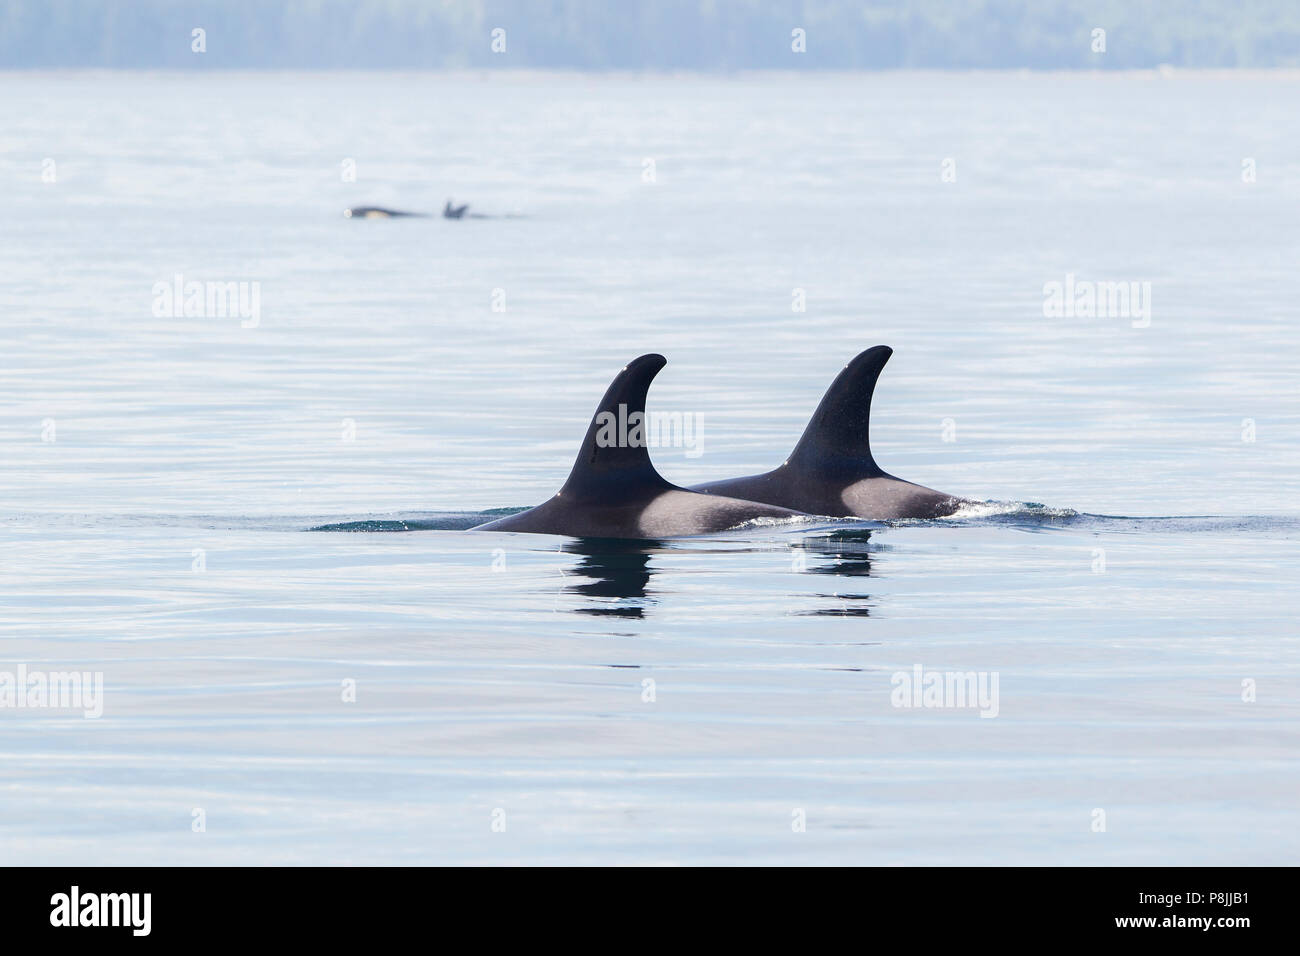 Killer whales - Stock Image